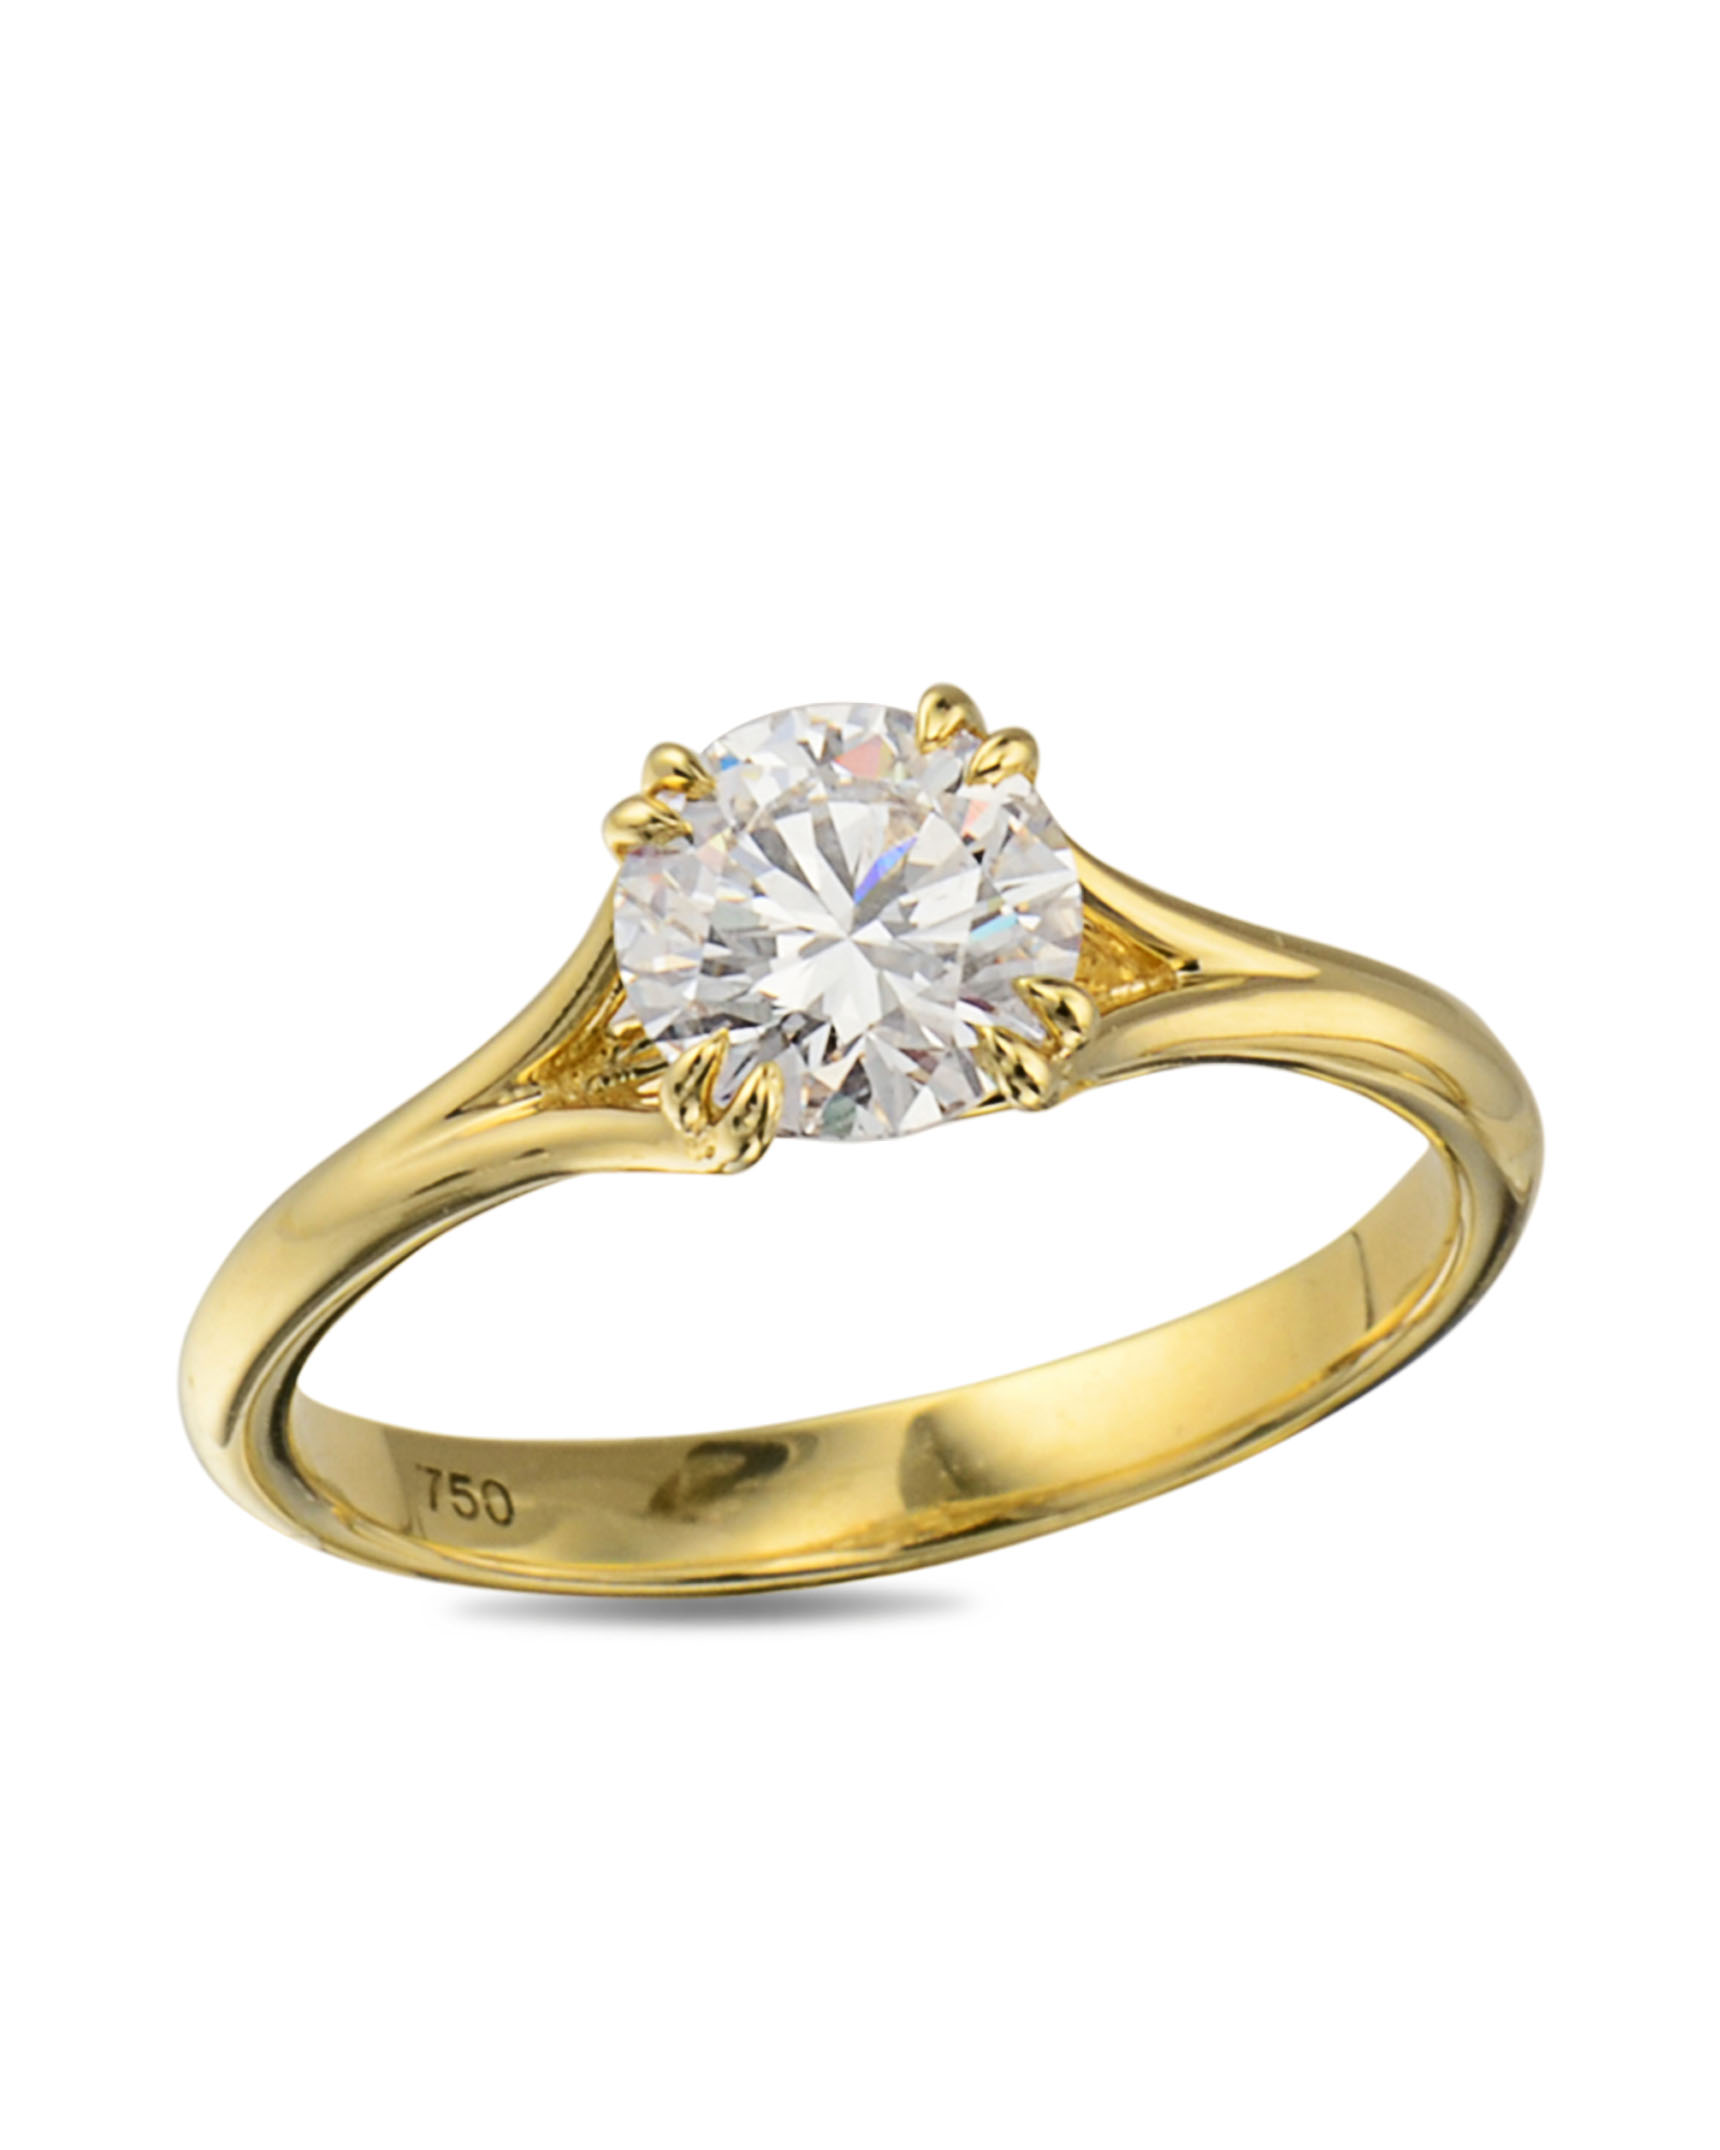 ring and il product alezraki rings wedding solid bridal engagement set fullxfull inbar gold